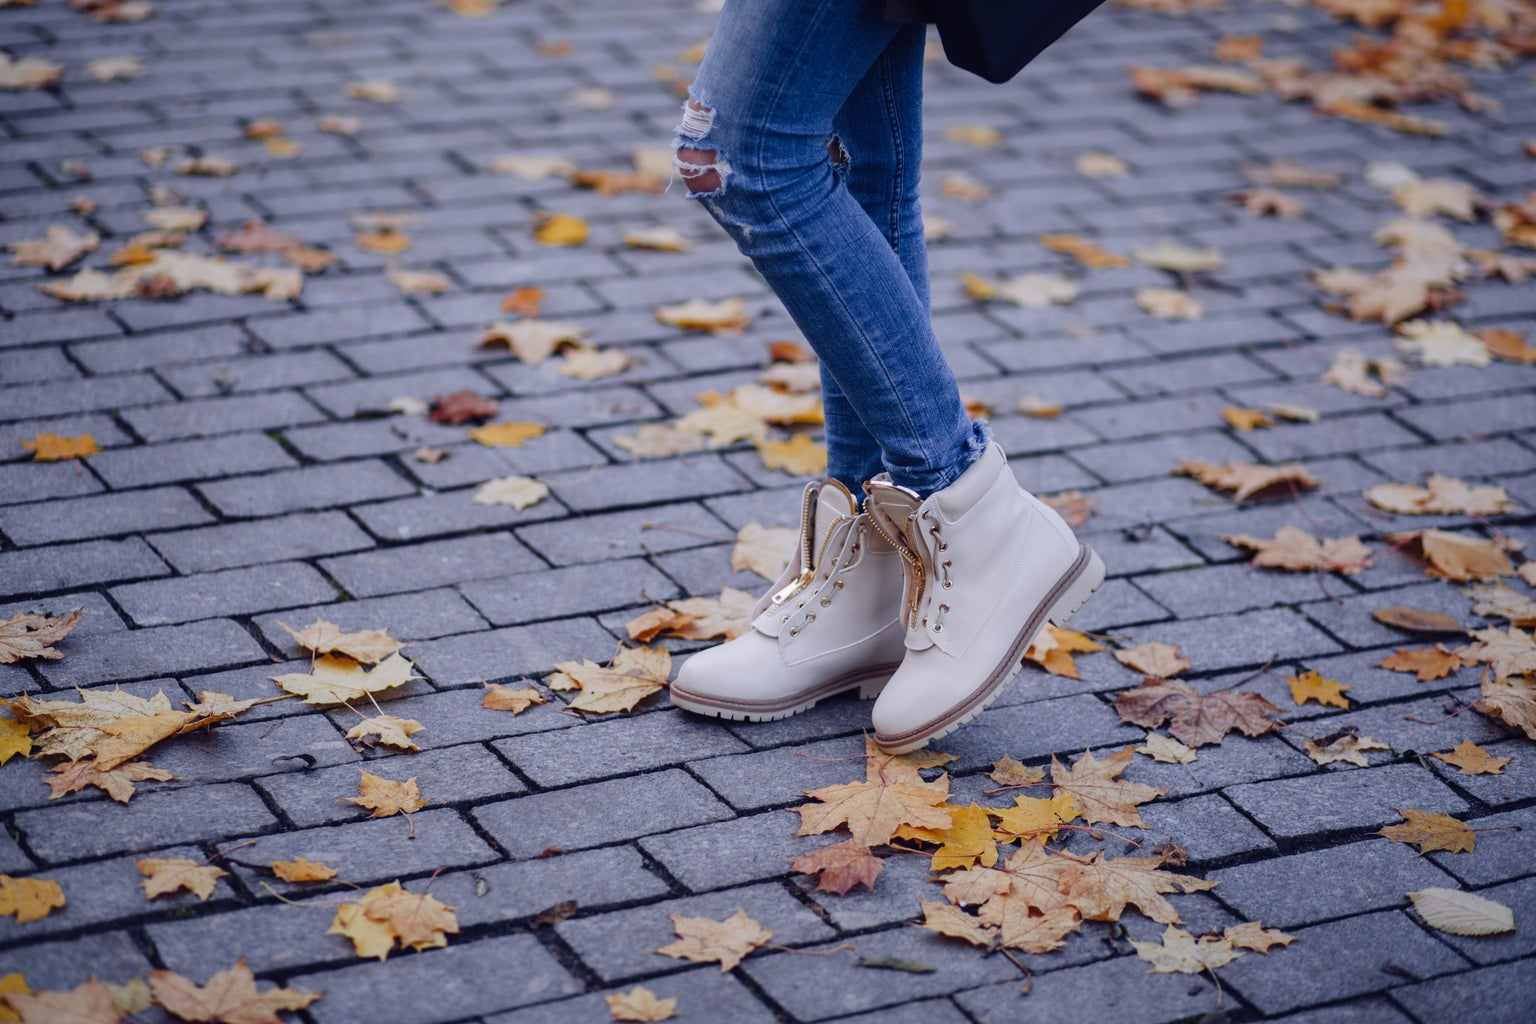 person wearing boots in fall leaves